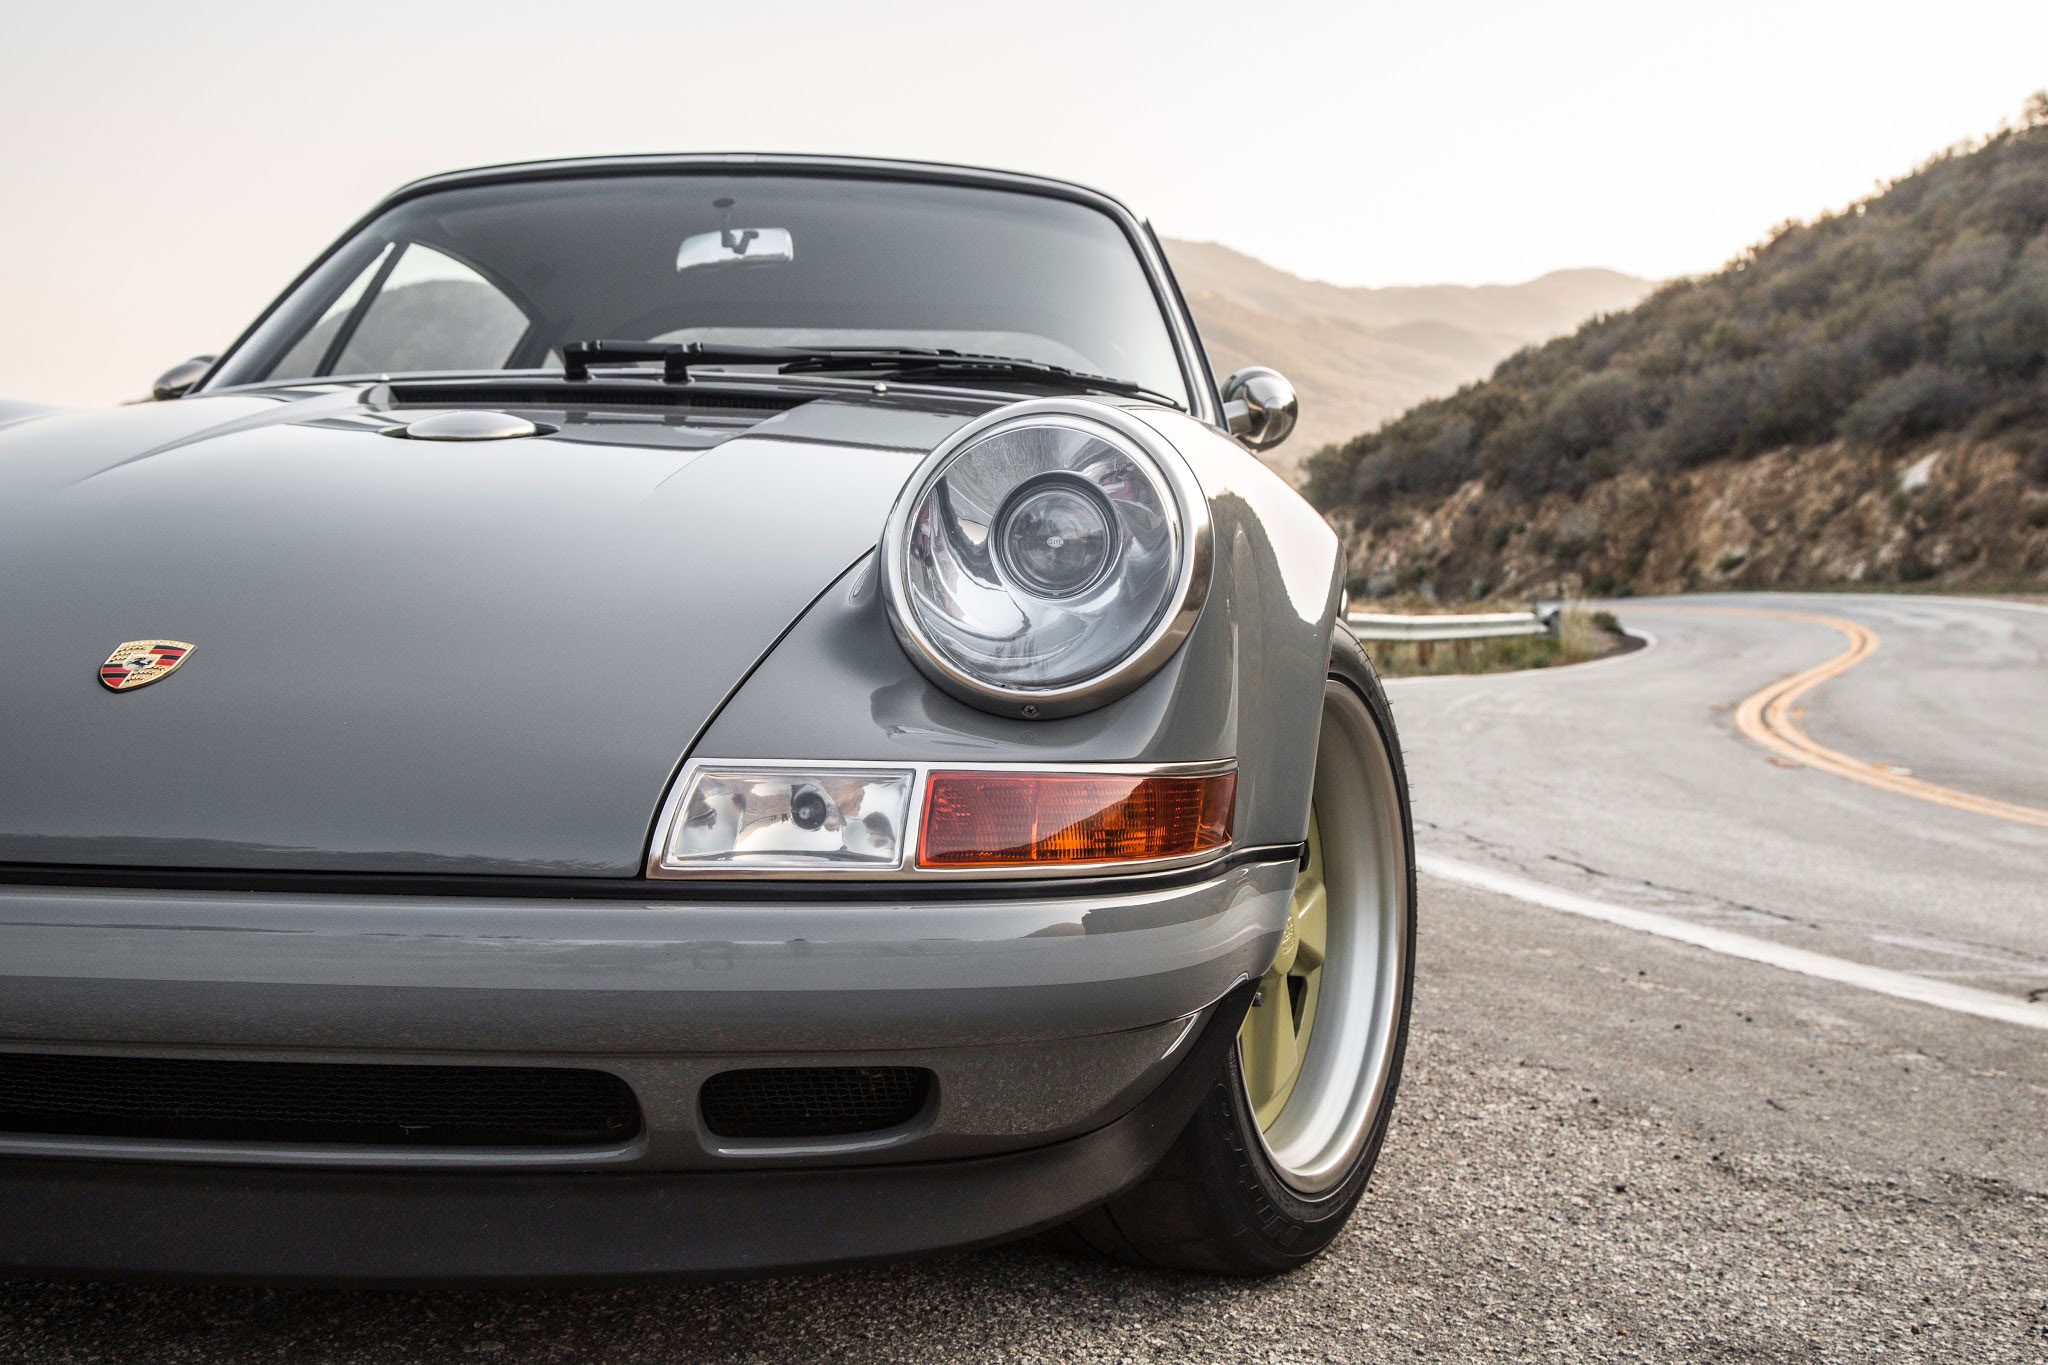 Approximately 34 customers to date have reimagined their cars, and Singer is working with another 60 who want their 911s restored.